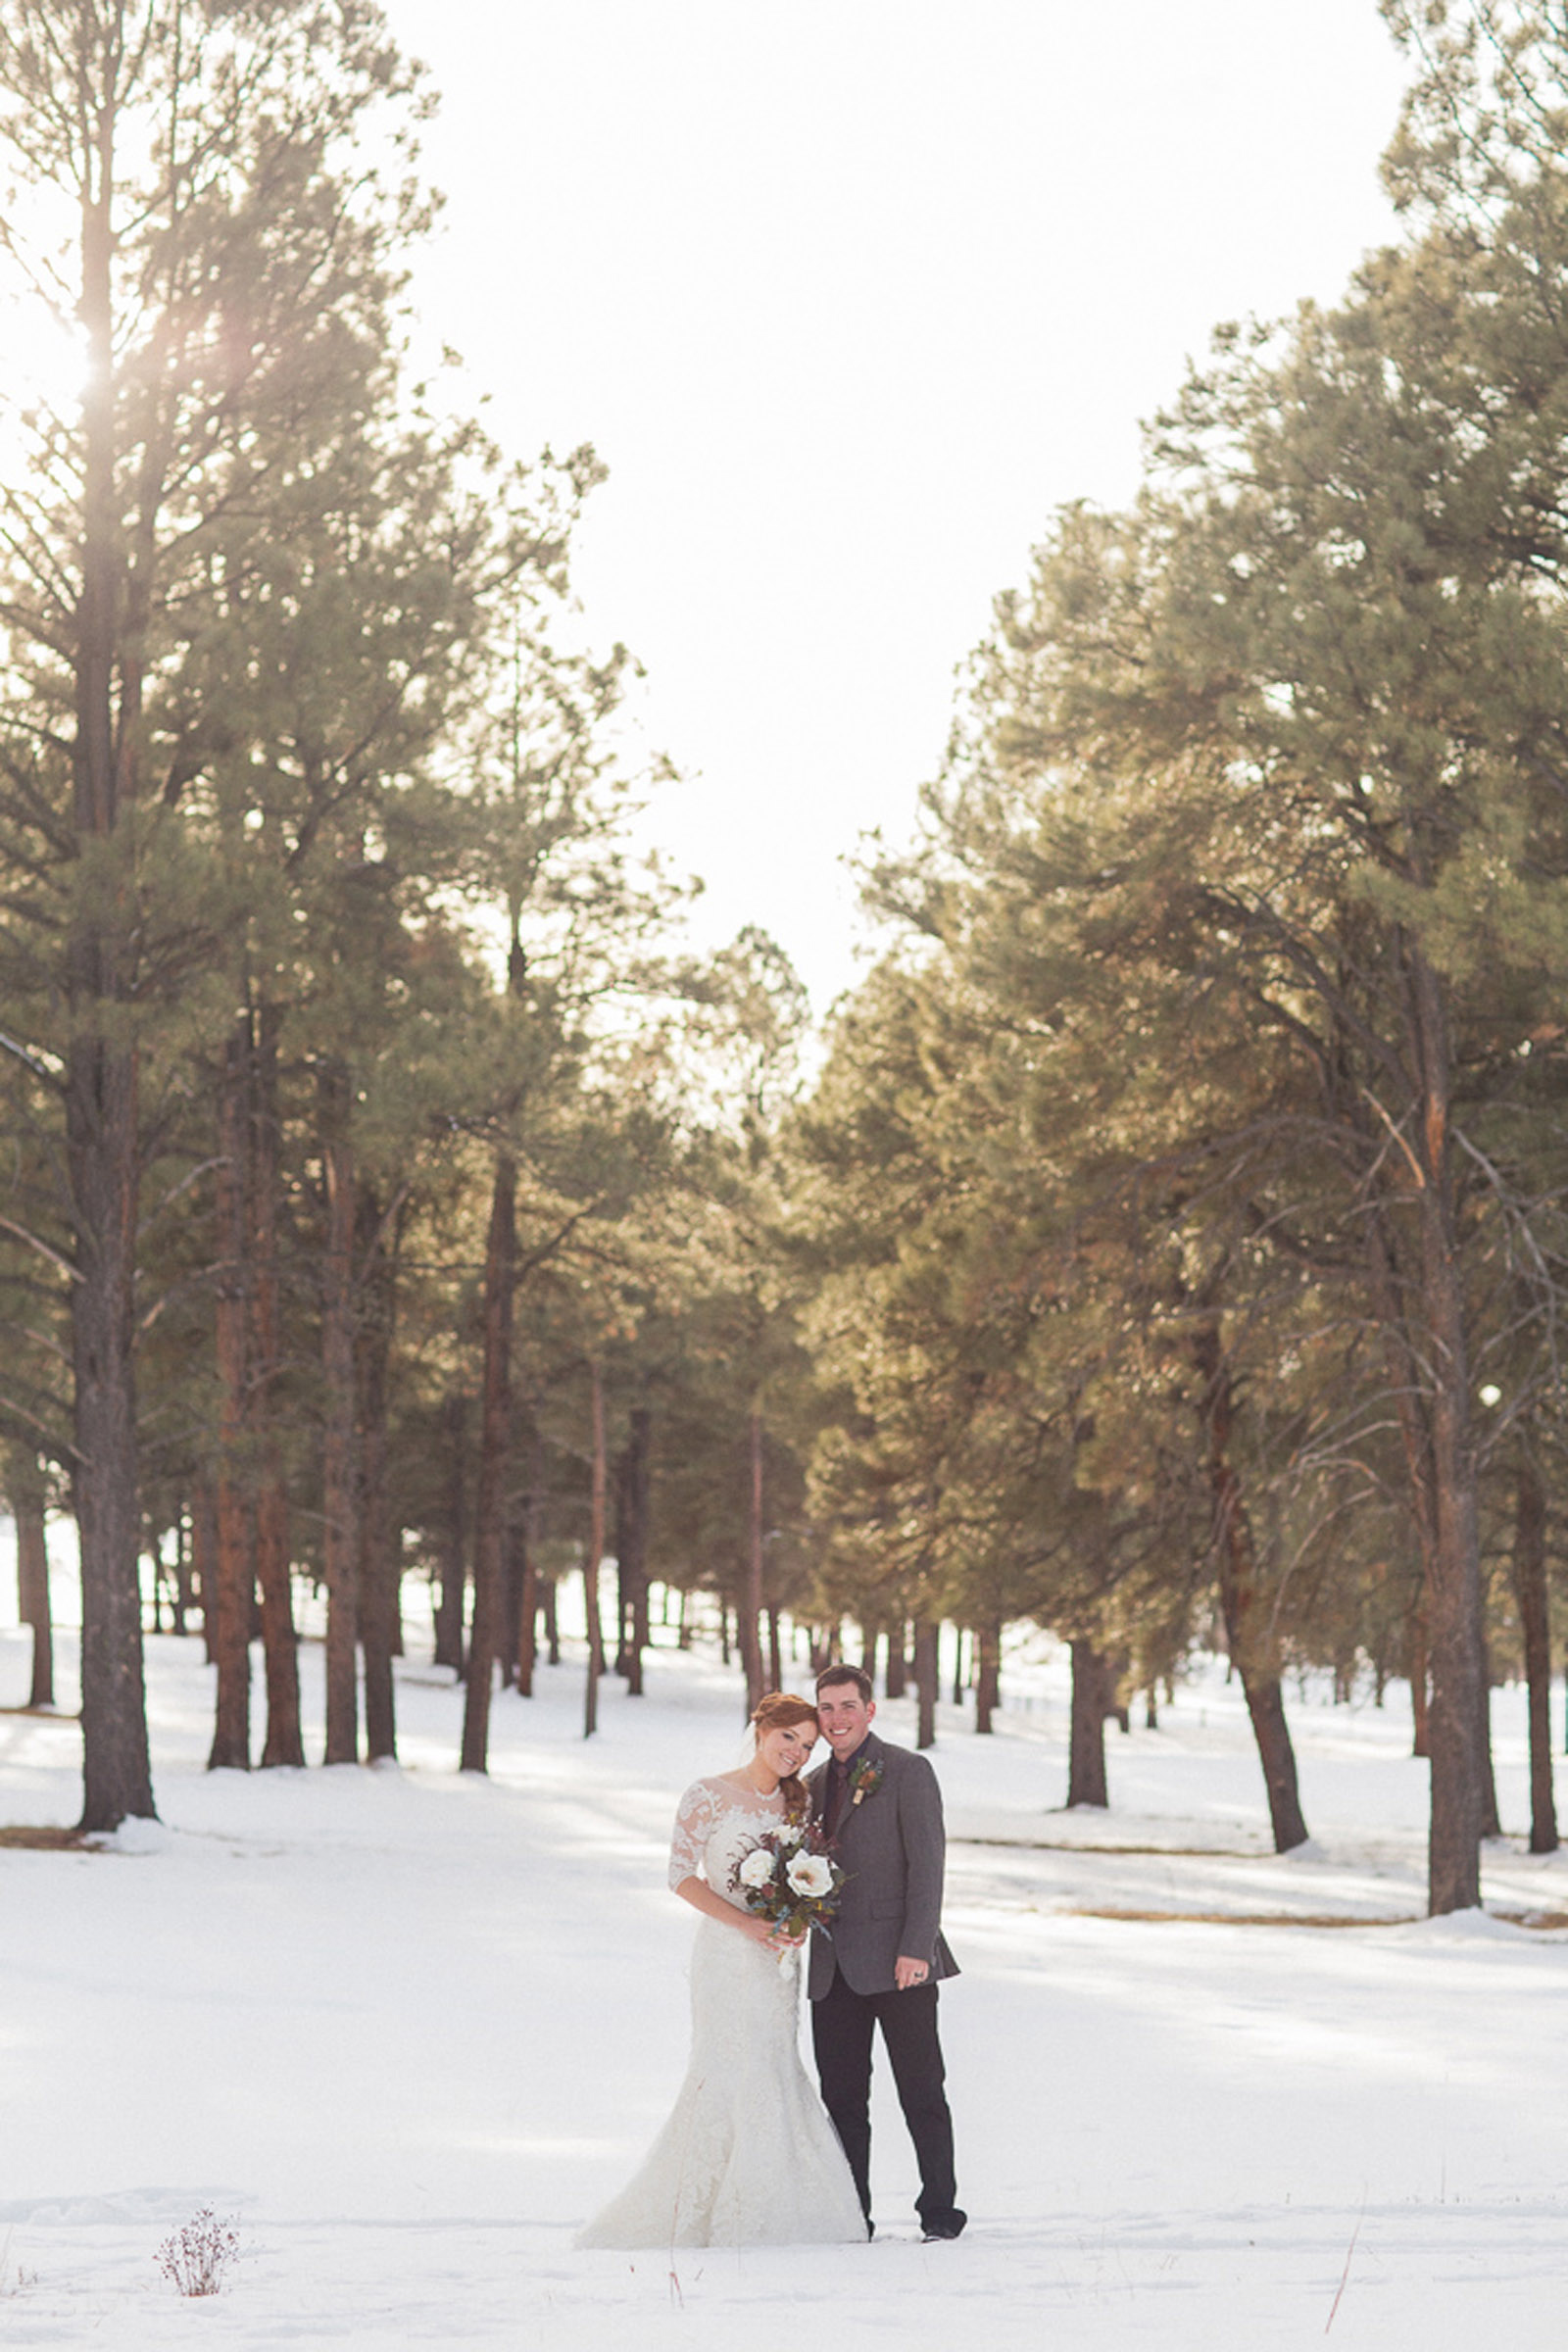 159-wedding-photographer-captures-newlyweds-in-snow-during-a-winter-snow-wedding-in-the-mountains-in-colorado